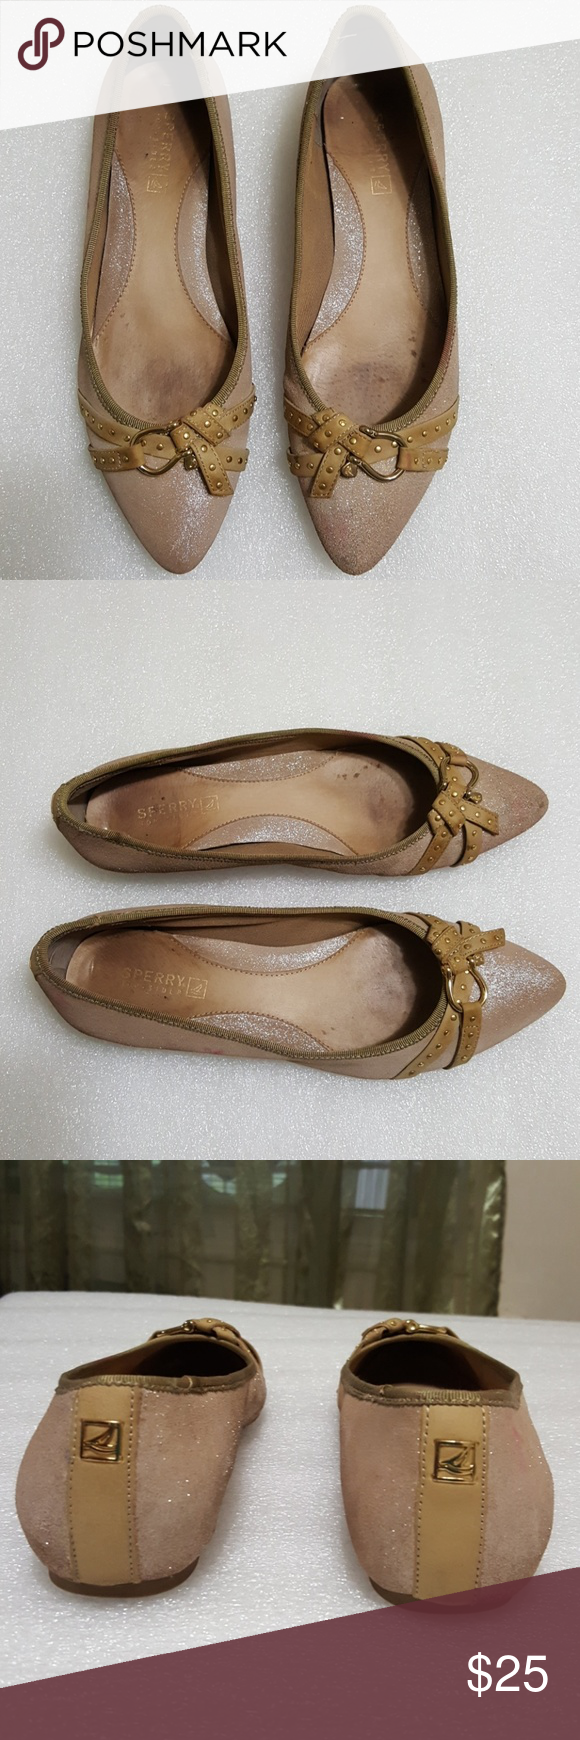 🎈SPERRY TOP SIDER🎈 women's flats size 7